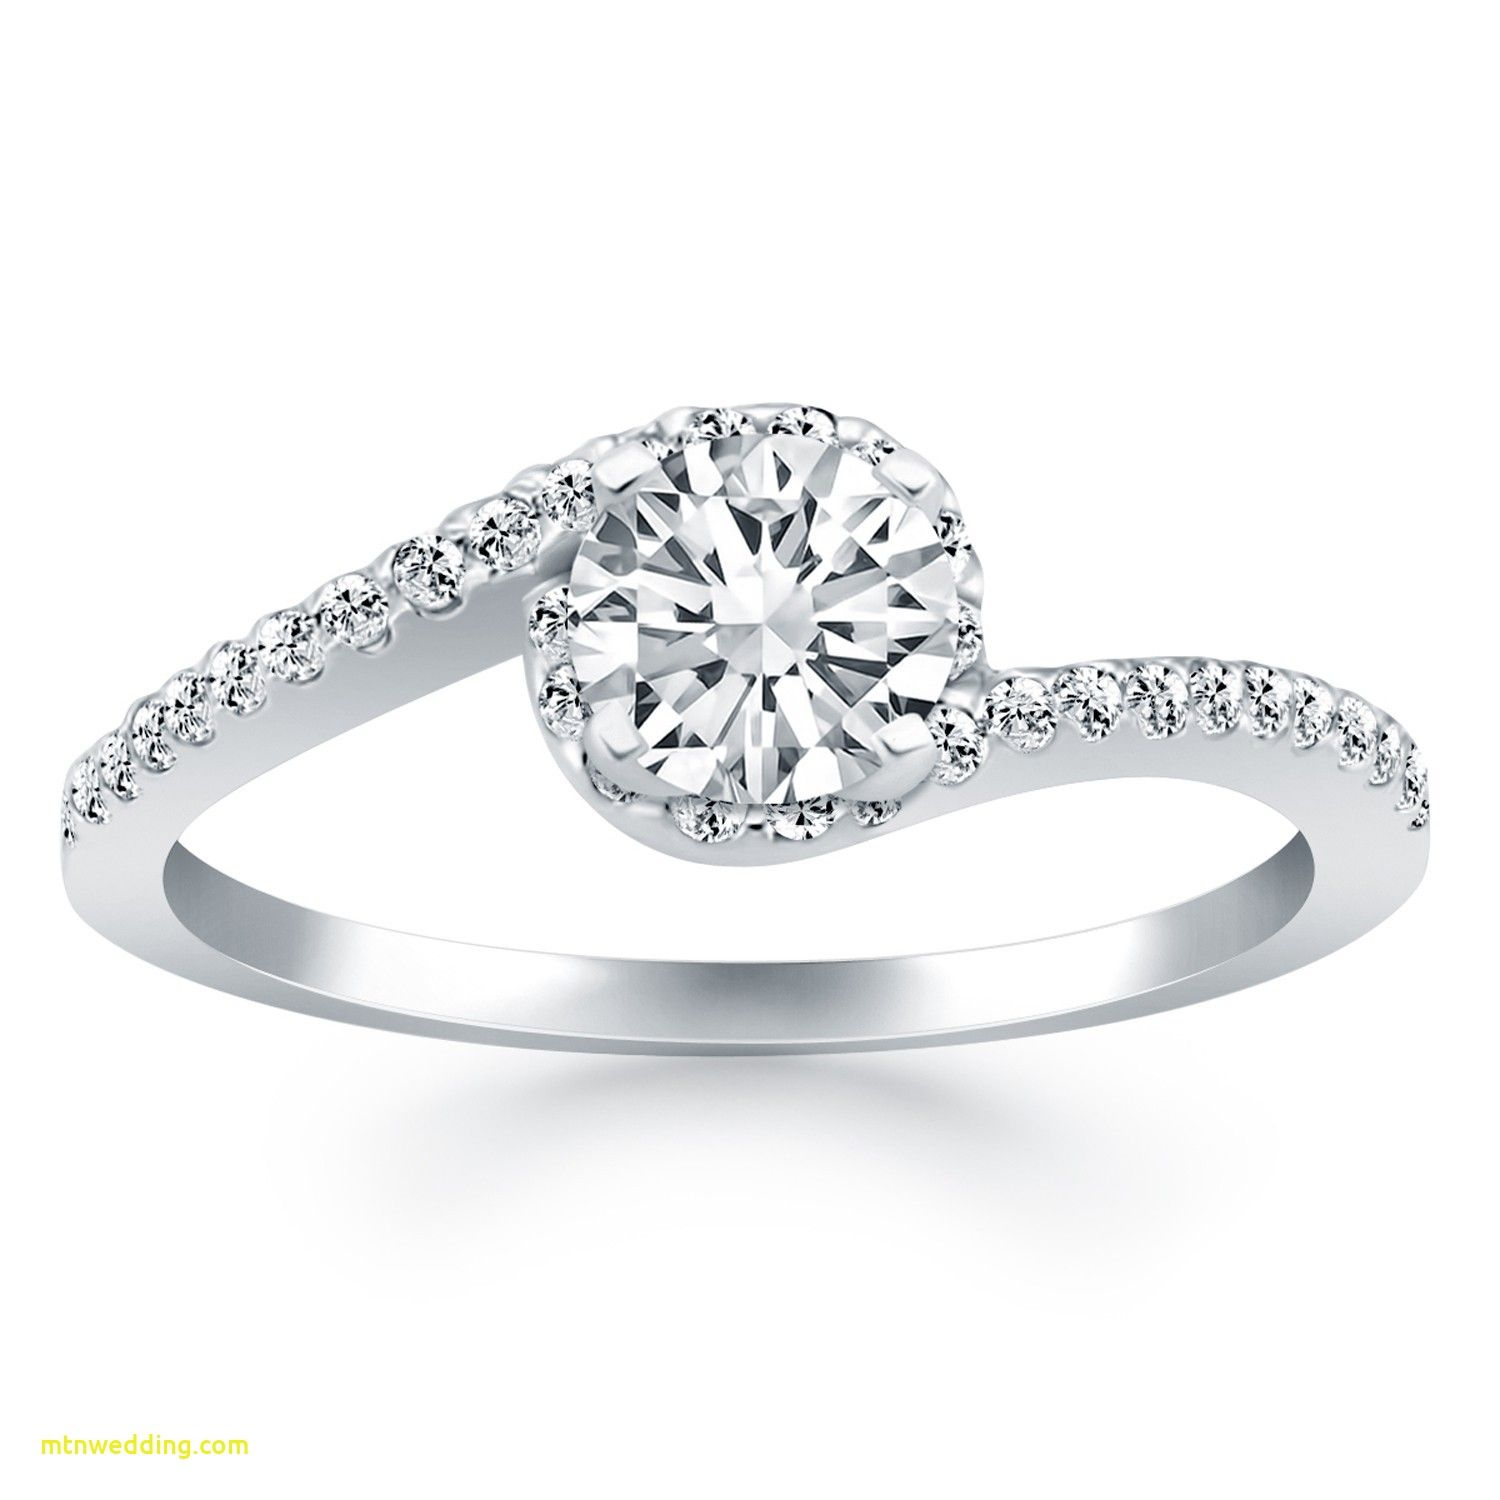 Lovely Curved Wedding Band With Solitaire Engagement Ring Check More At Http Mtnwedding Com Wedding Ring Engagement Rings Curved Wedding Band With Solitaire E